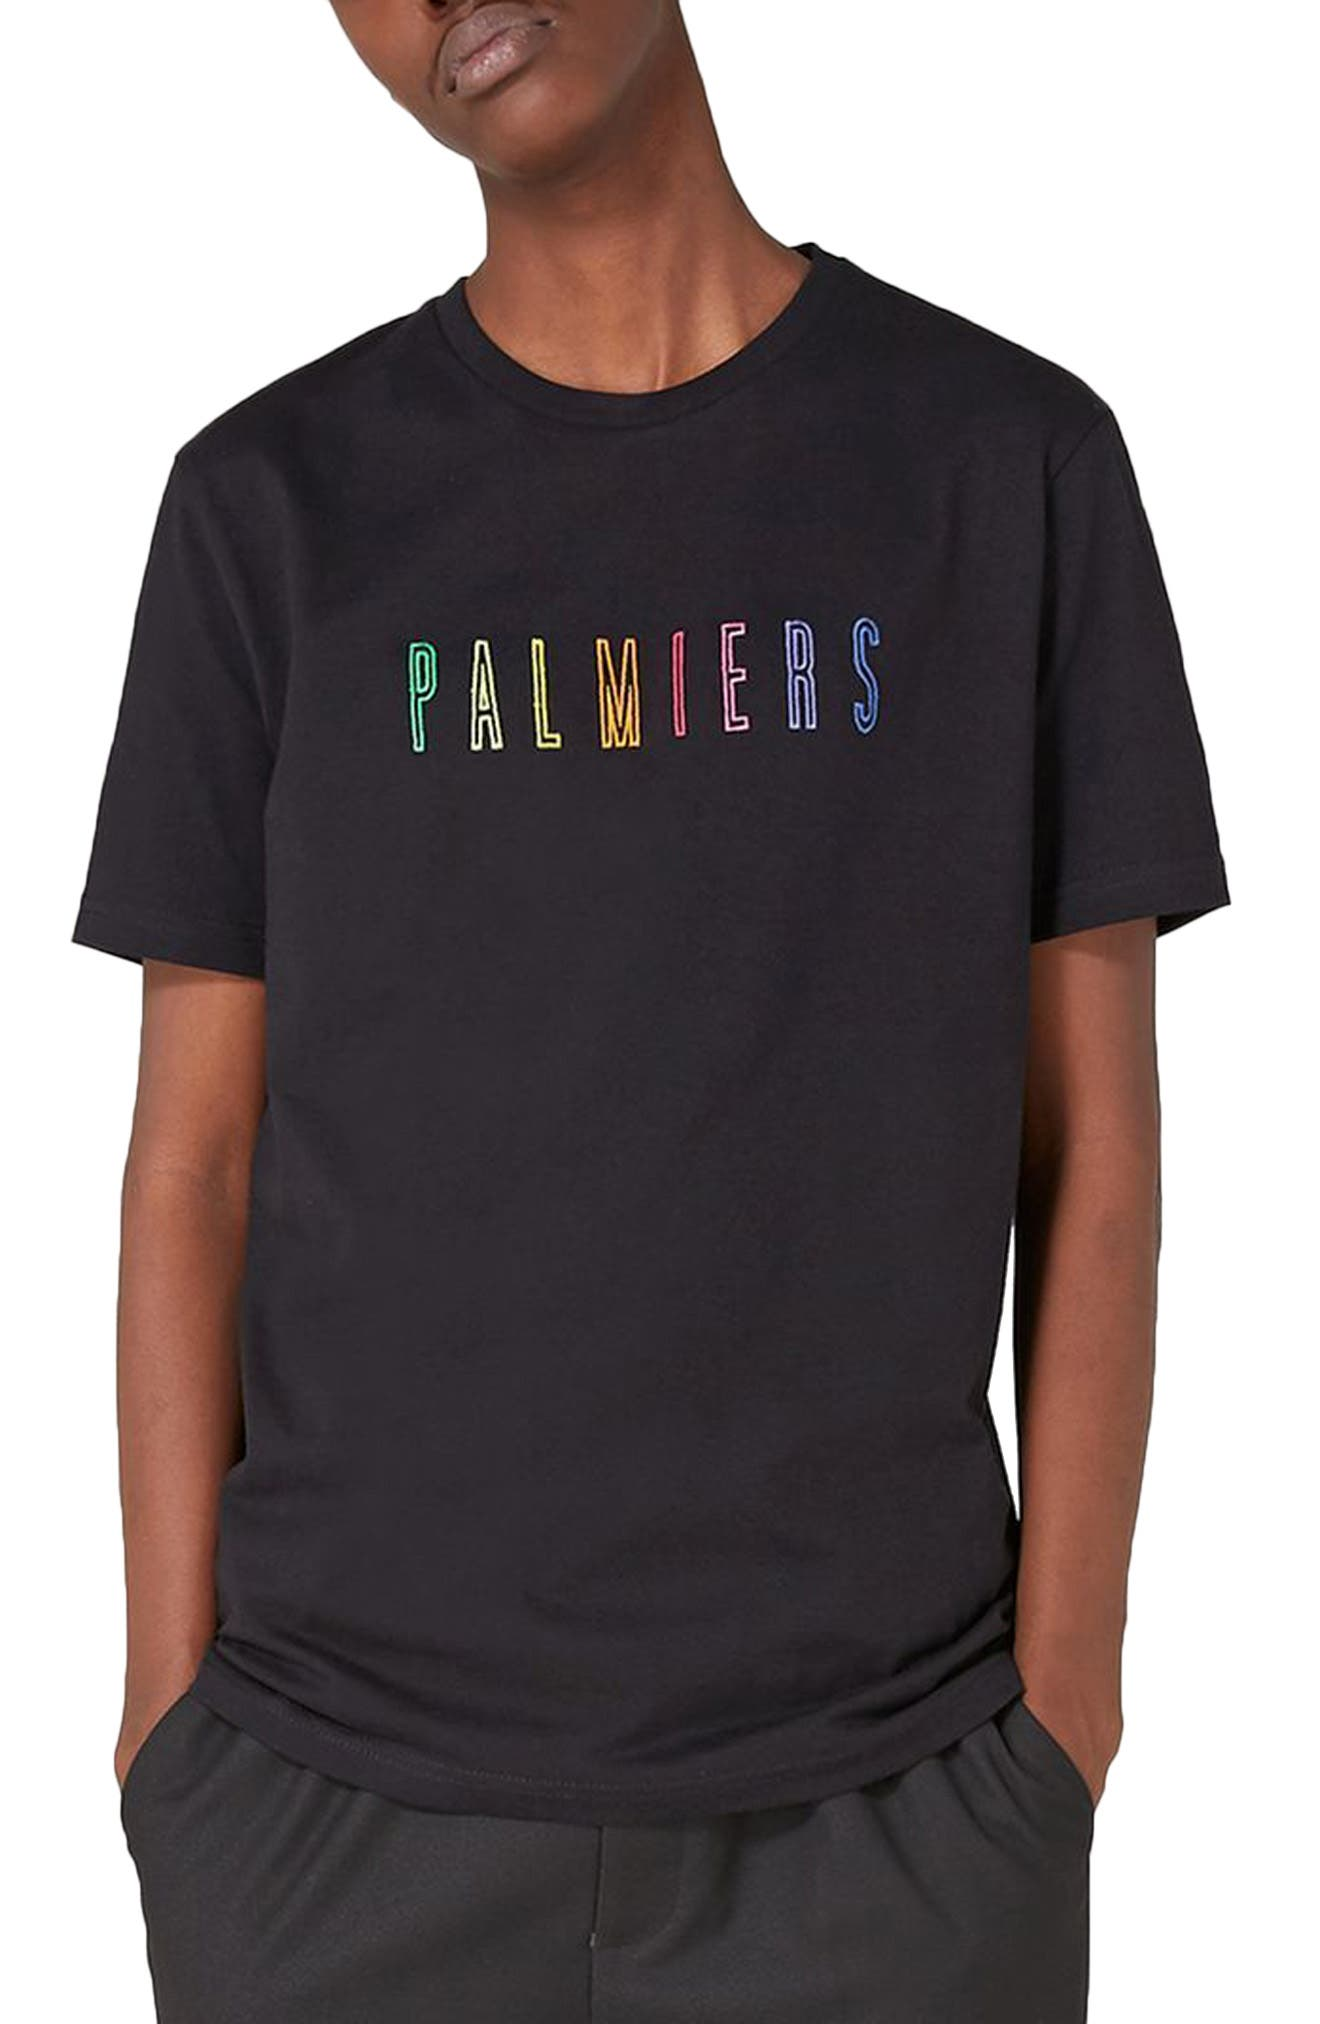 Palmiers Embroidered T-Shirt,                         Main,                         color, Black